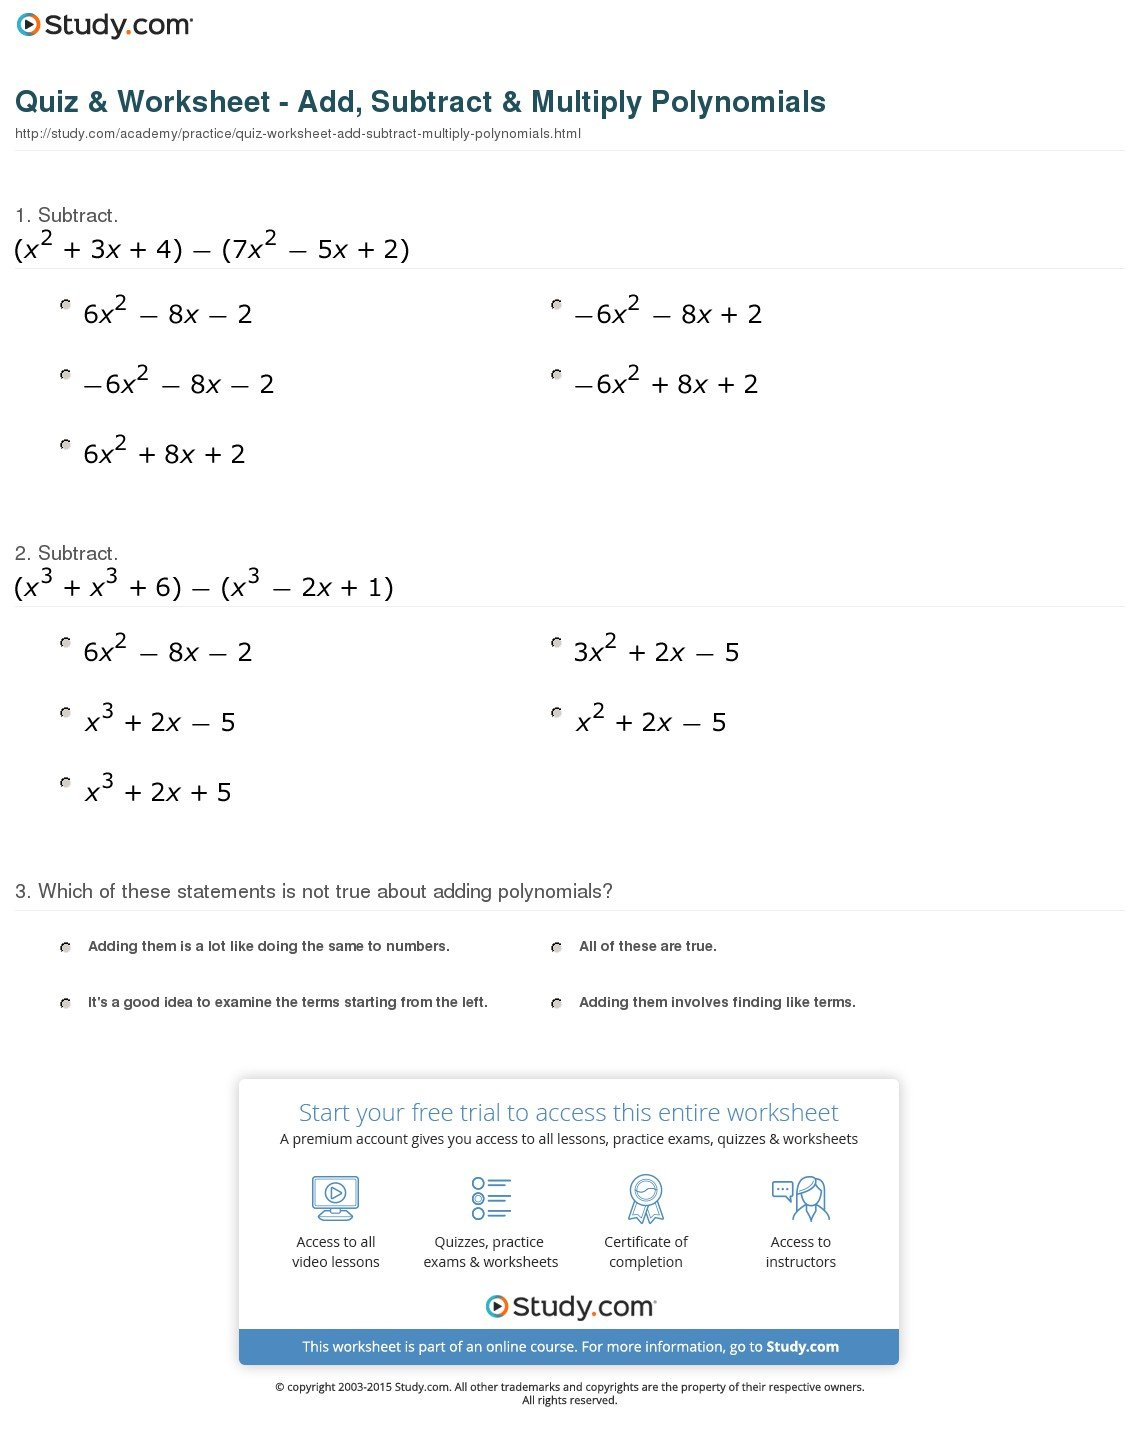 Multiplying Polynomials Worksheet Algebra 2